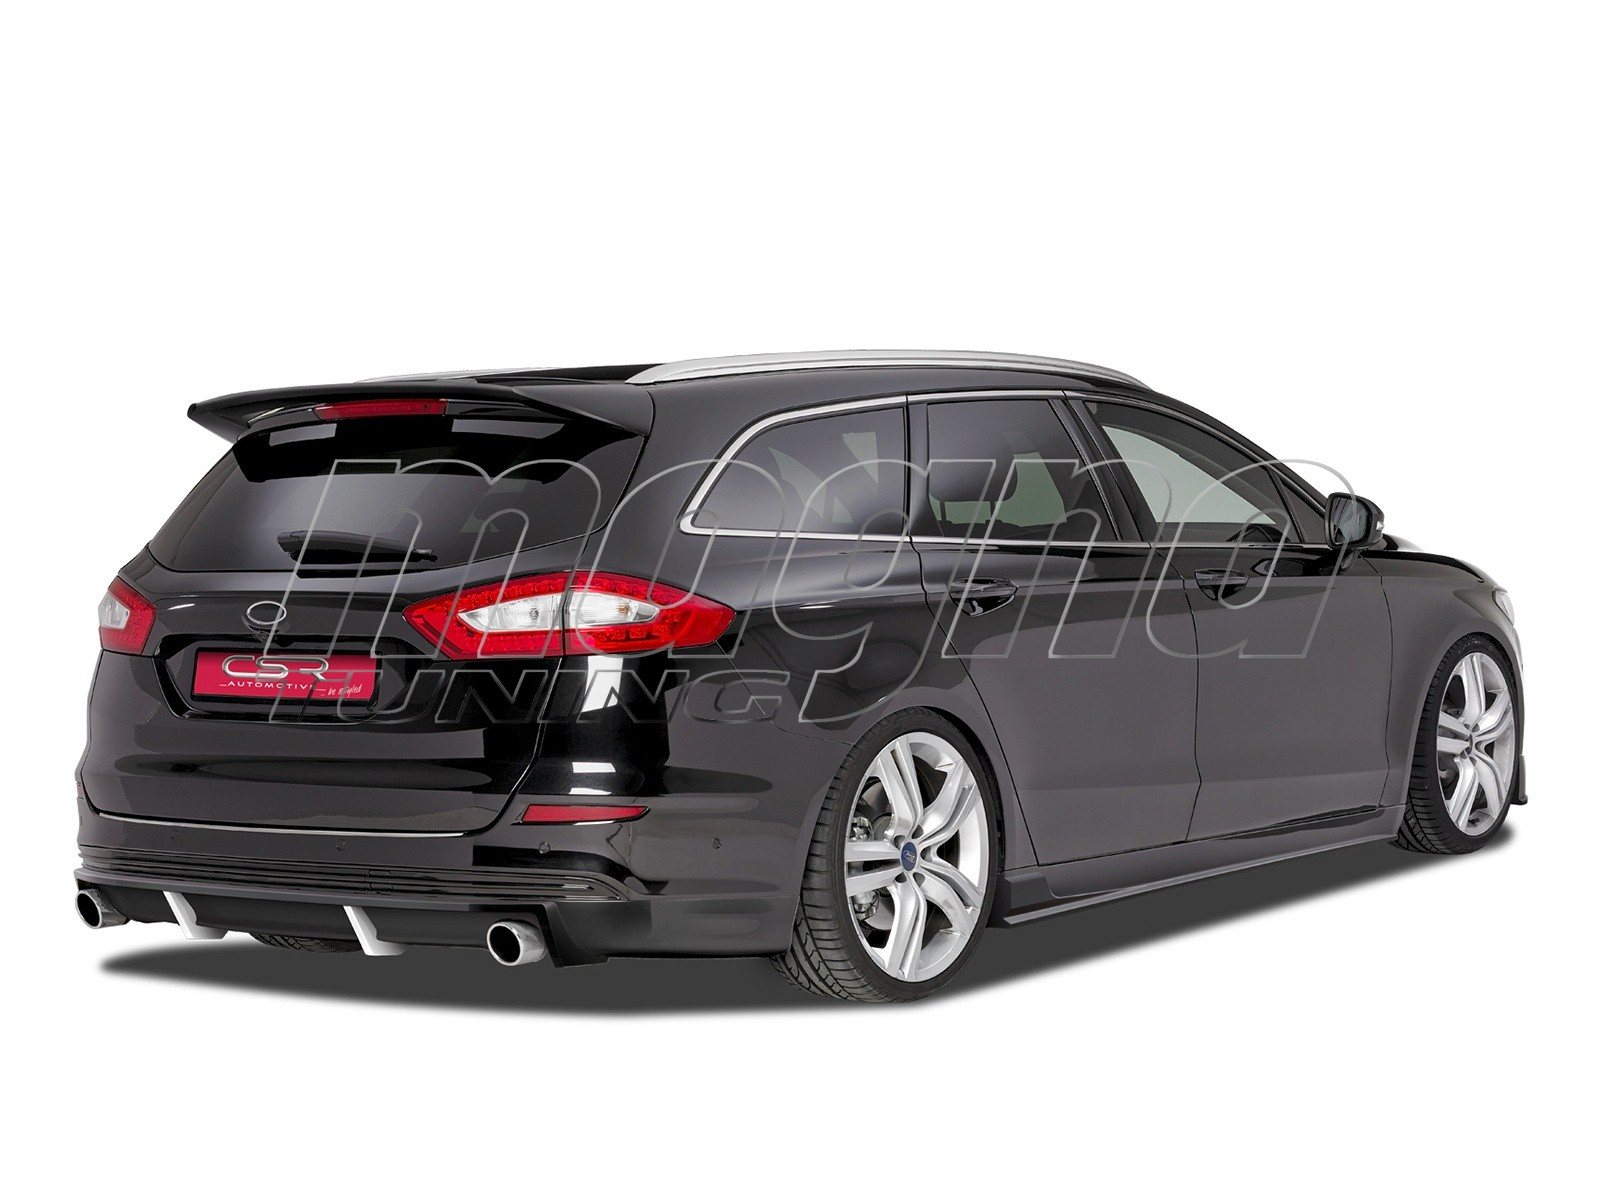 ford mondeo mk5 crono rear wing. Black Bedroom Furniture Sets. Home Design Ideas